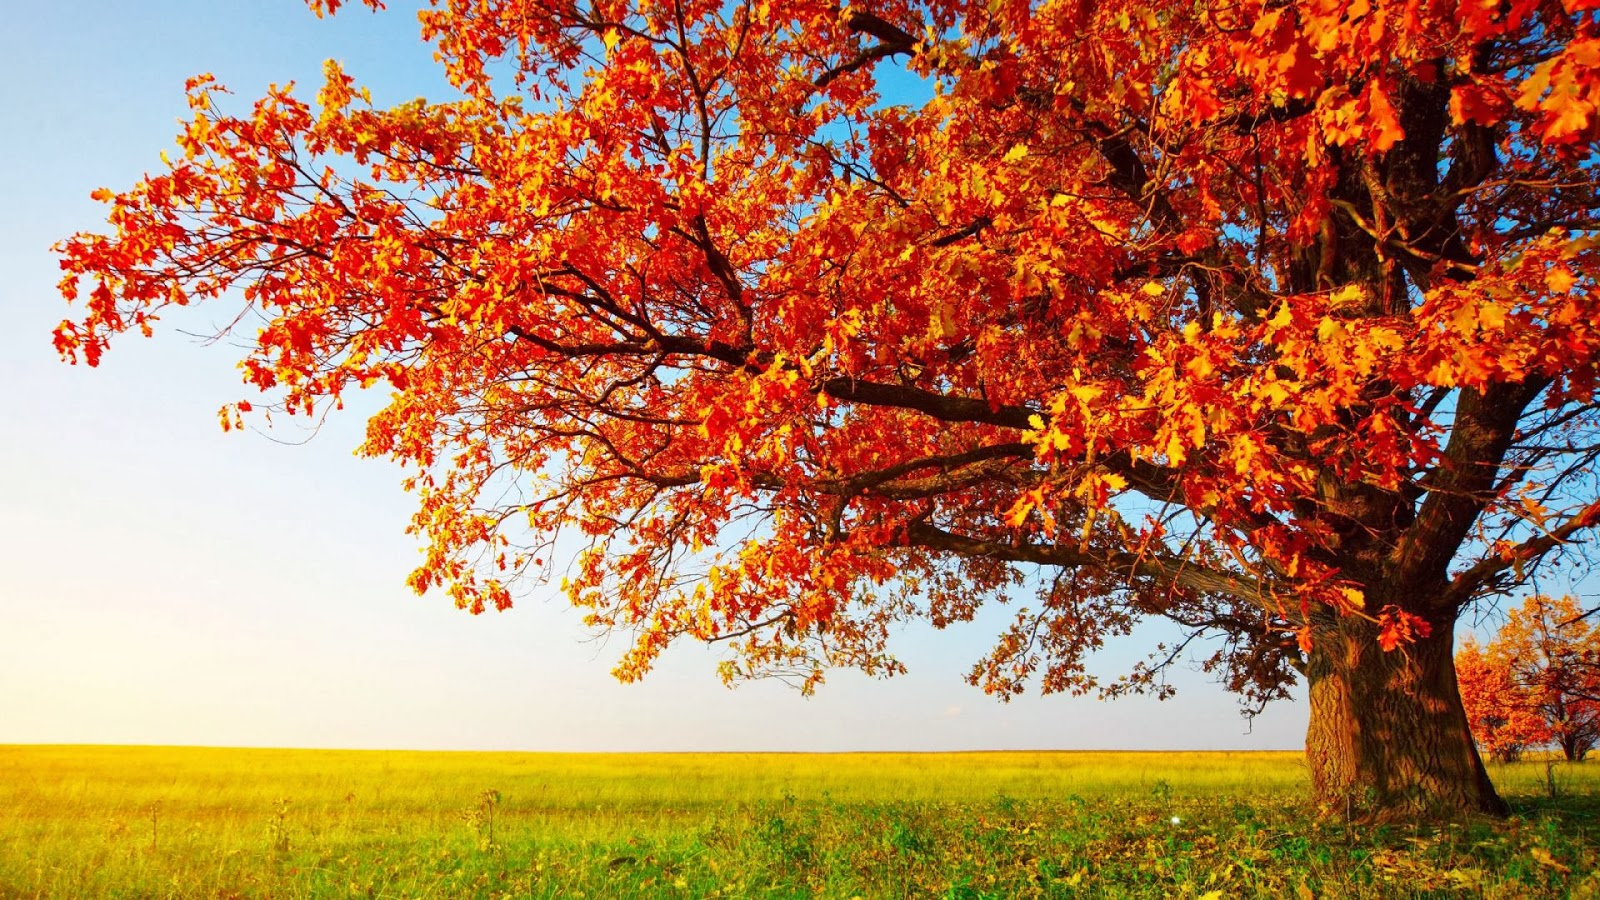 autumn 1080p hd nature wallpapers fall desktop background backgrounds scenery leaves 1080 tree autum landscape trees foliage wall country